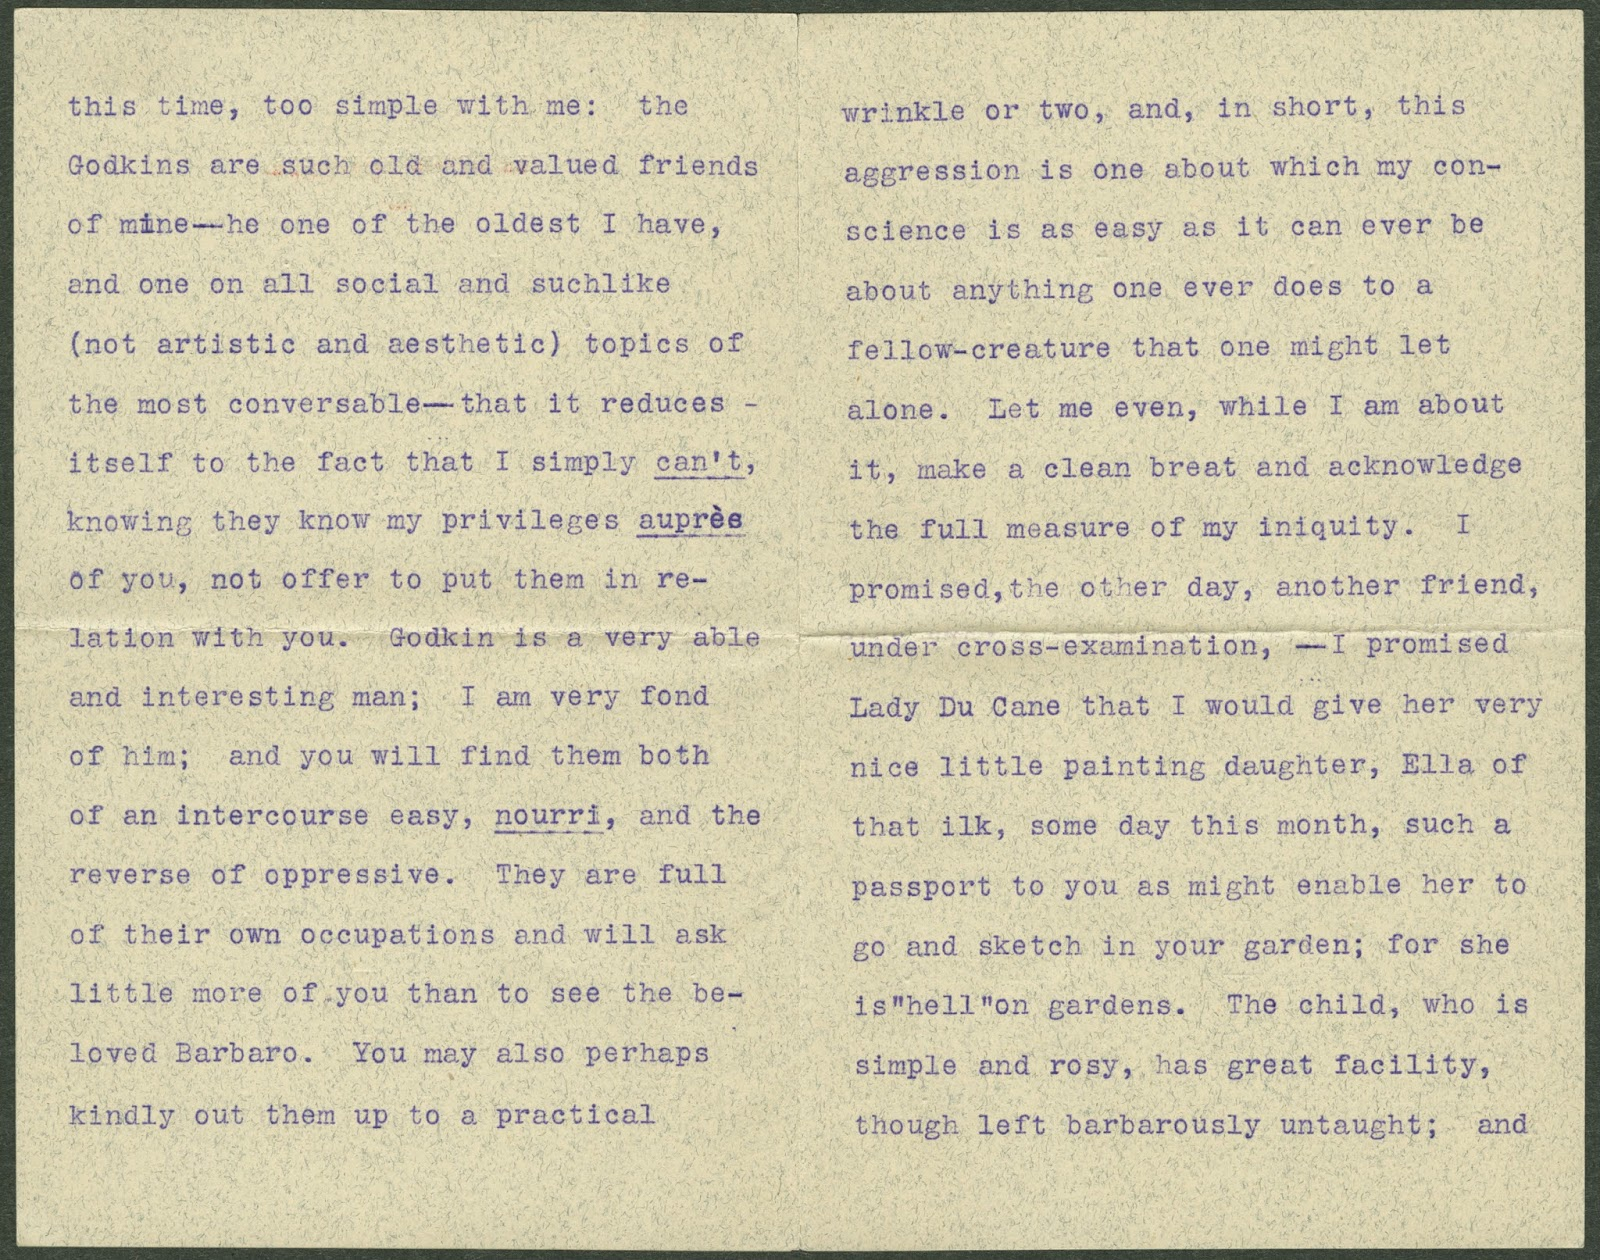 Further pages from the typed letter.